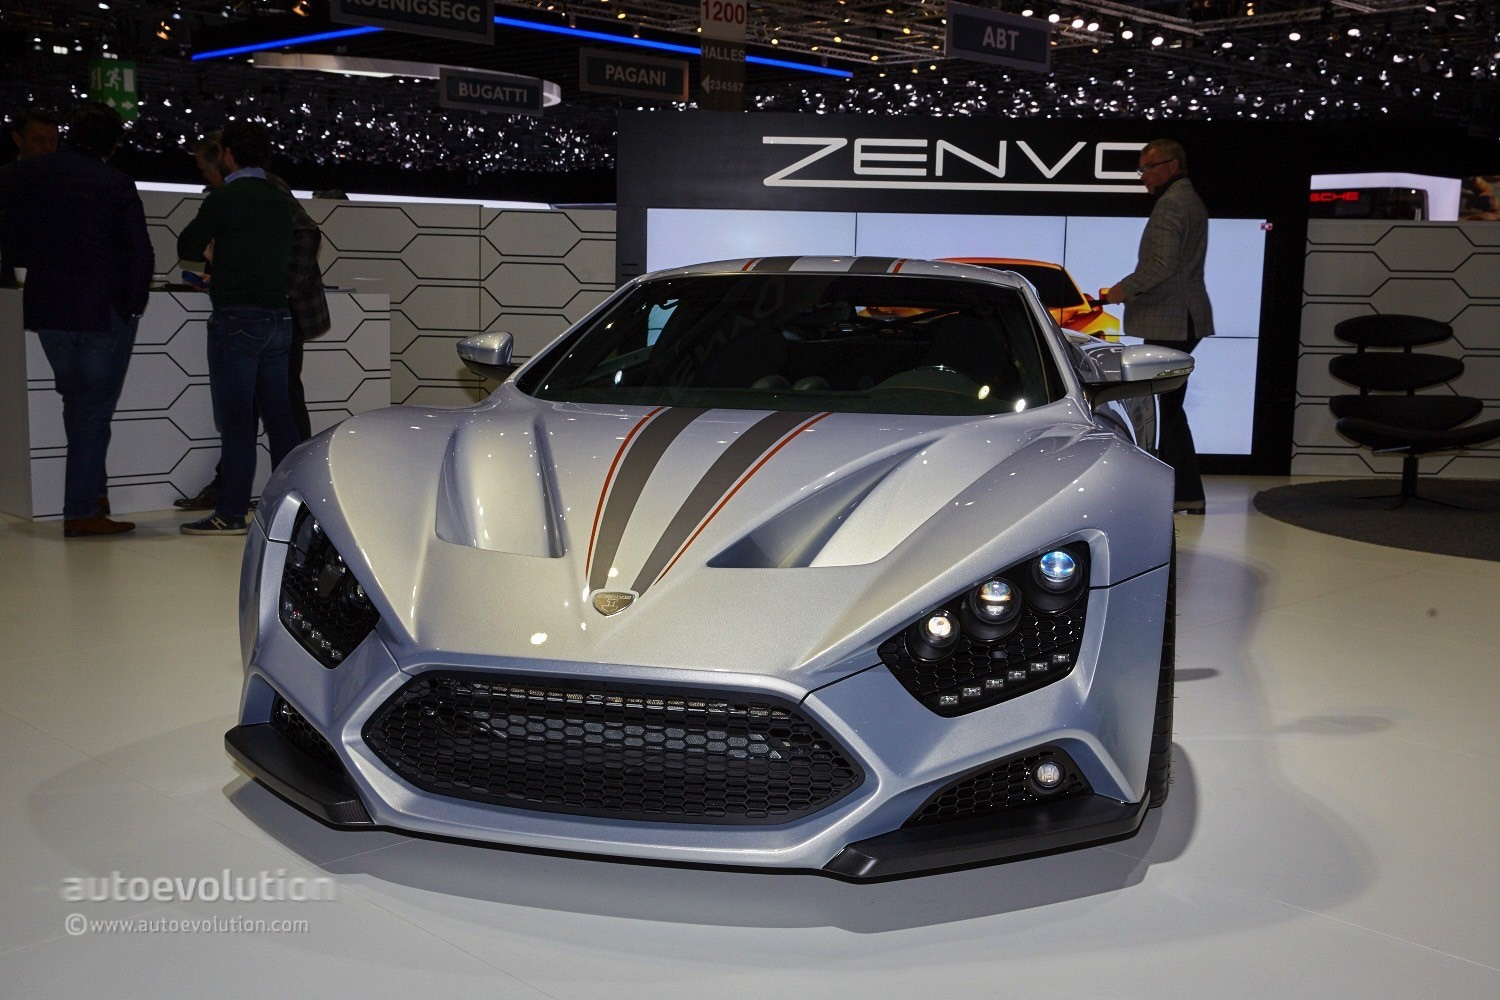 Zenvo Supercar Shows Up In Geneva With New Transmission